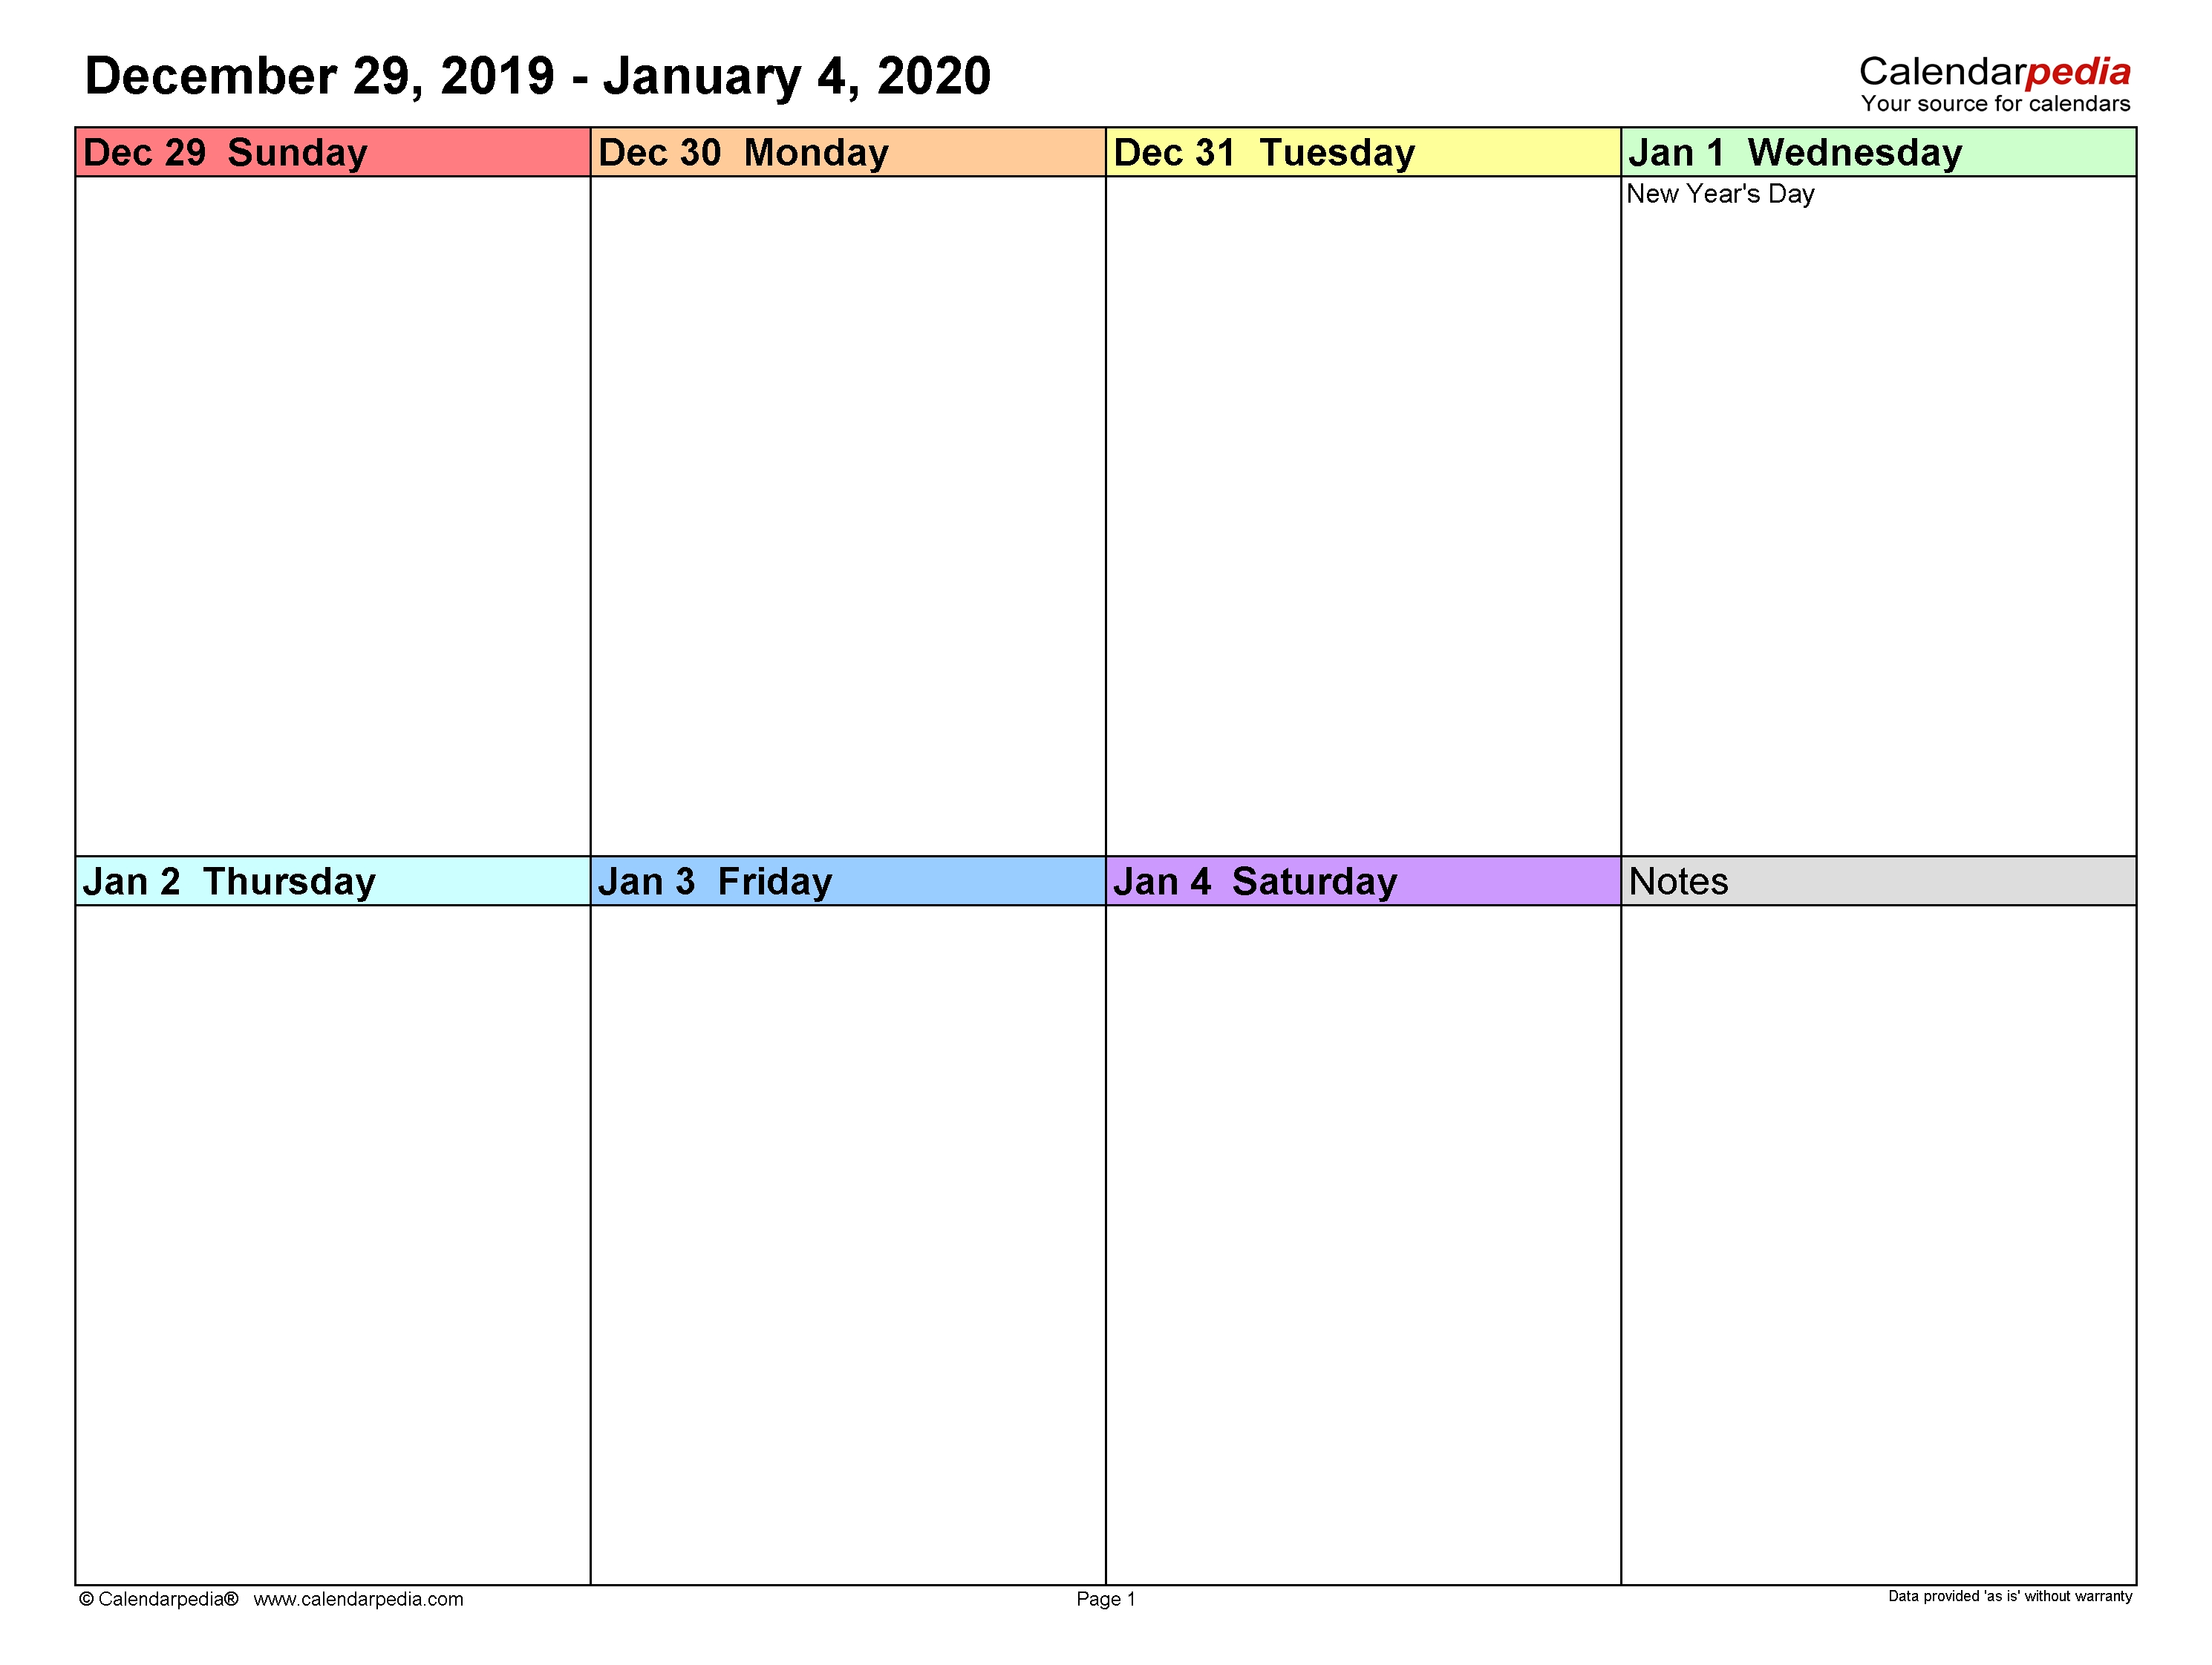 Weekly Calendars 2020 For Word - 12 Free Printable Templates with regard to 2020 Calendar Format Monday Through Friday Week